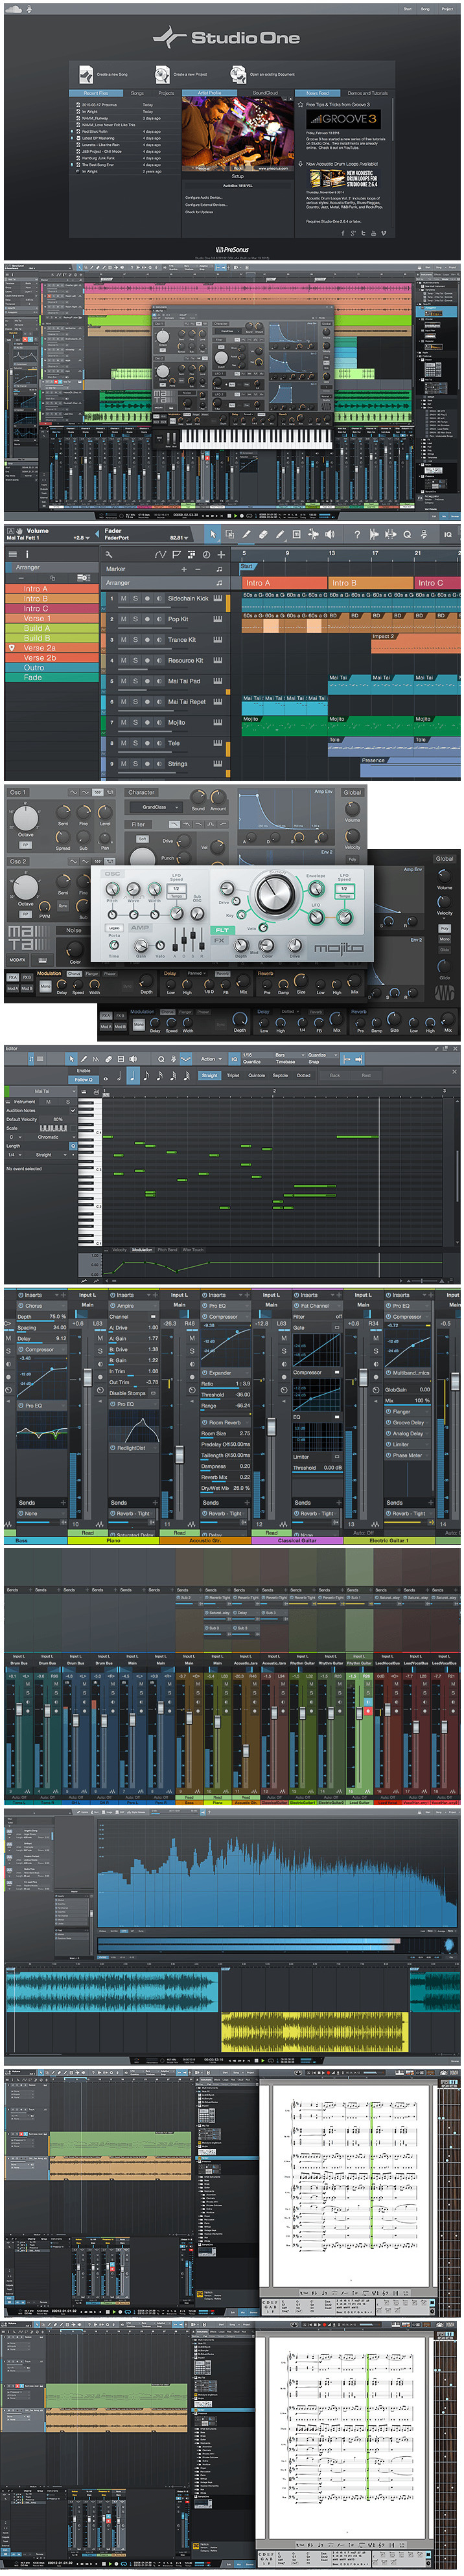 presonus_studio_one_3_professional_323